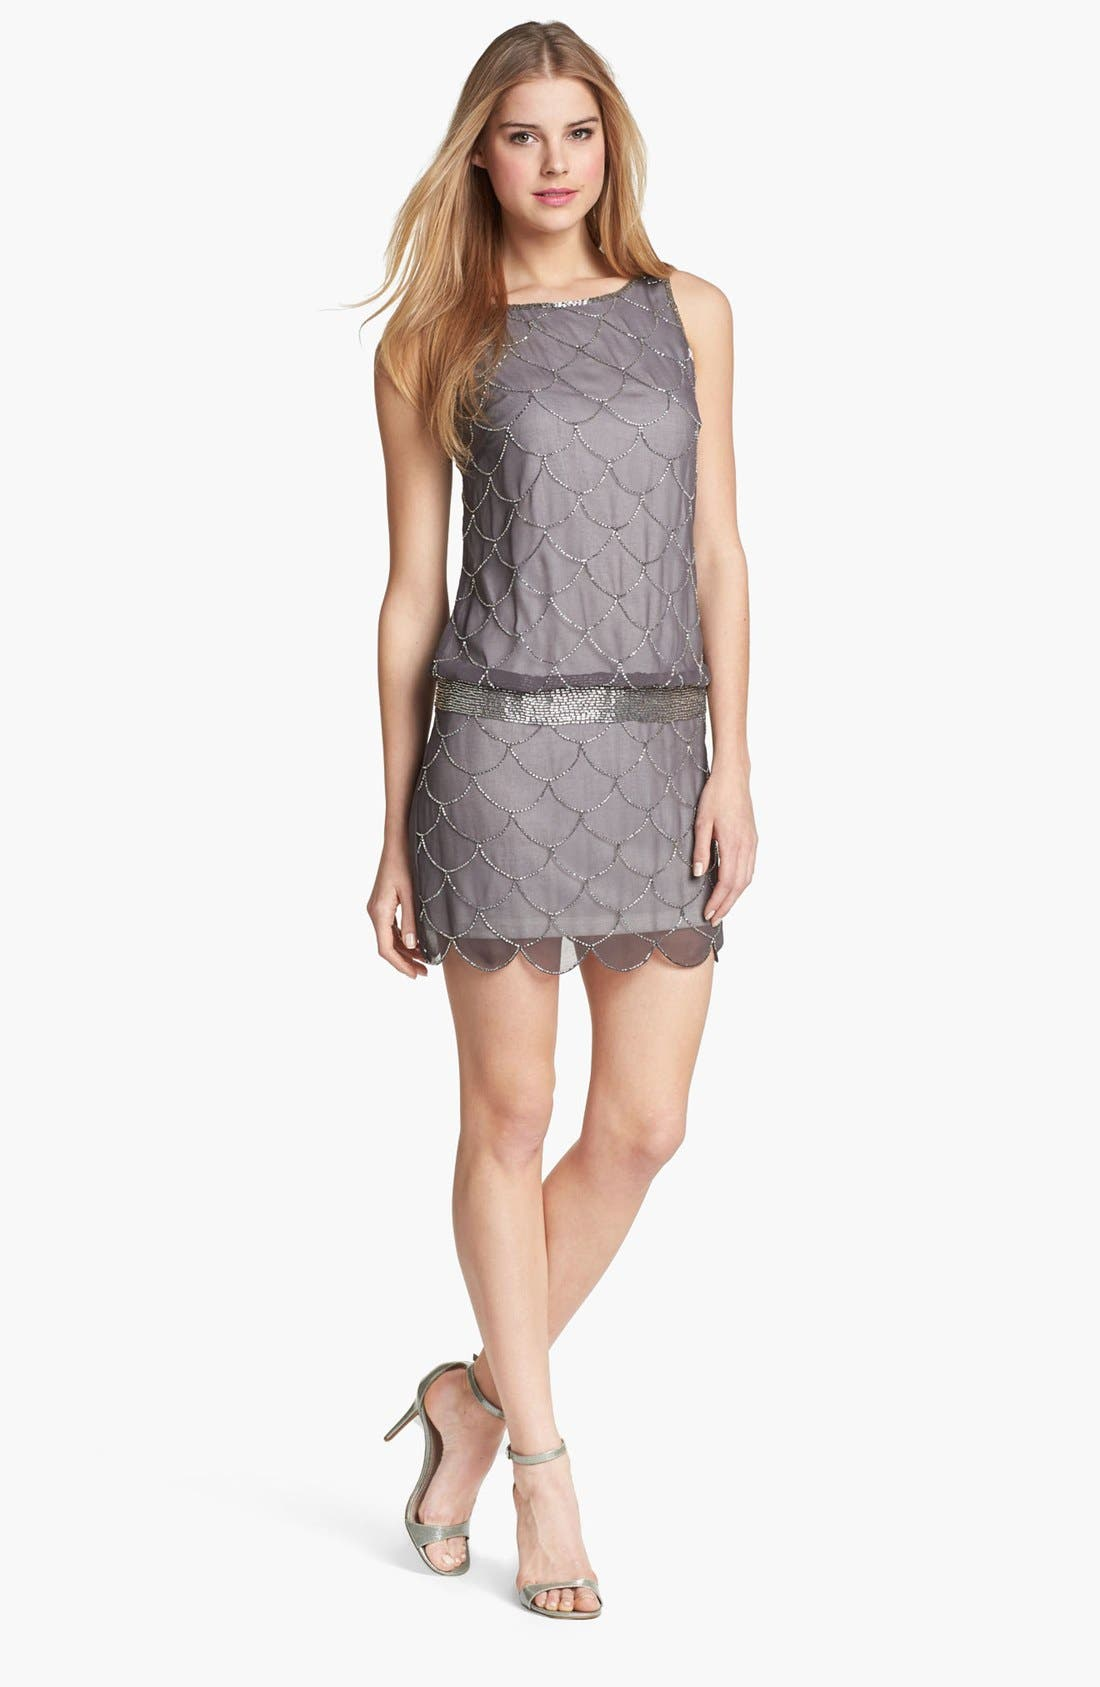 Alternate Image 1 Selected - Adrianna Papell 'Fish Scale' Embellished Mesh Dress